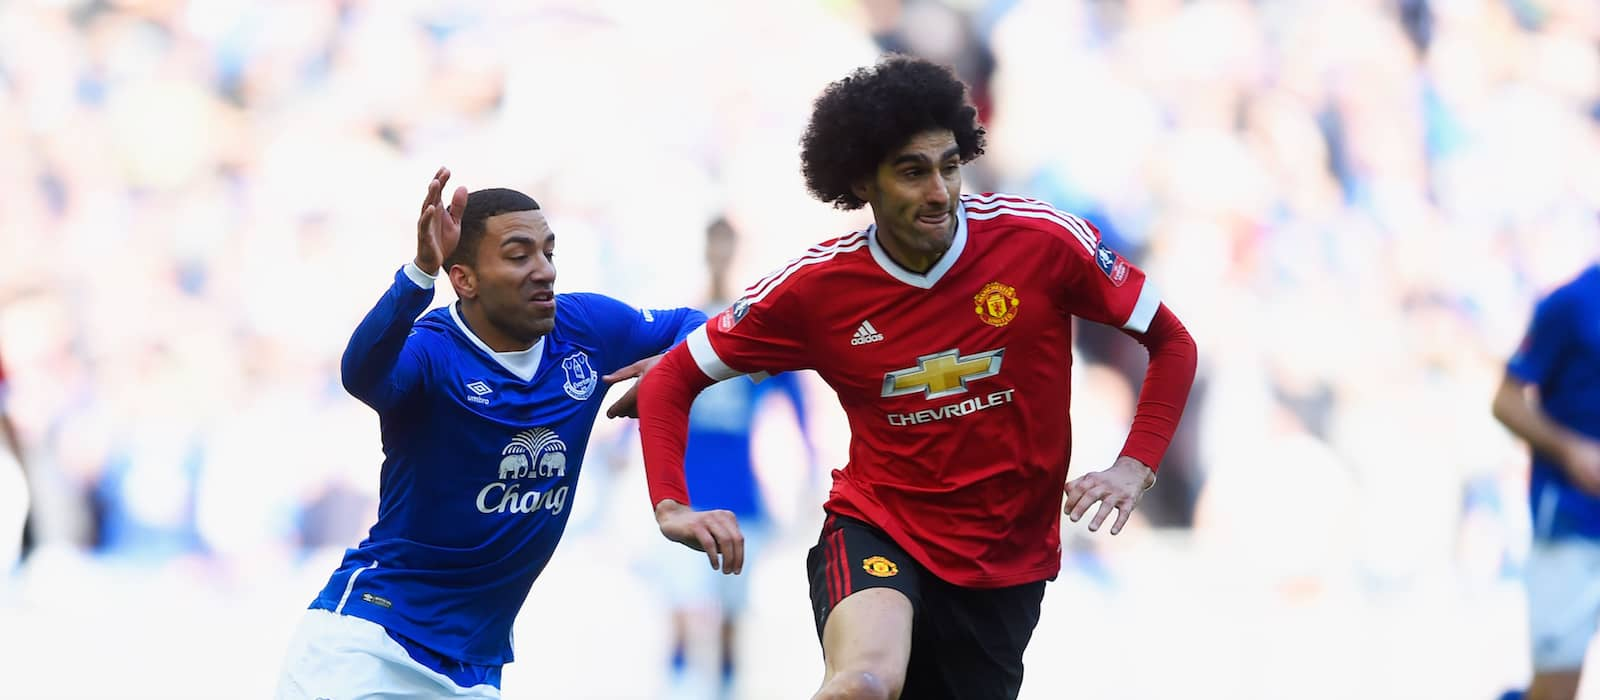 Manchester United midfielder Marouane Fellaini excited to return to Wembley in the FA Cup final